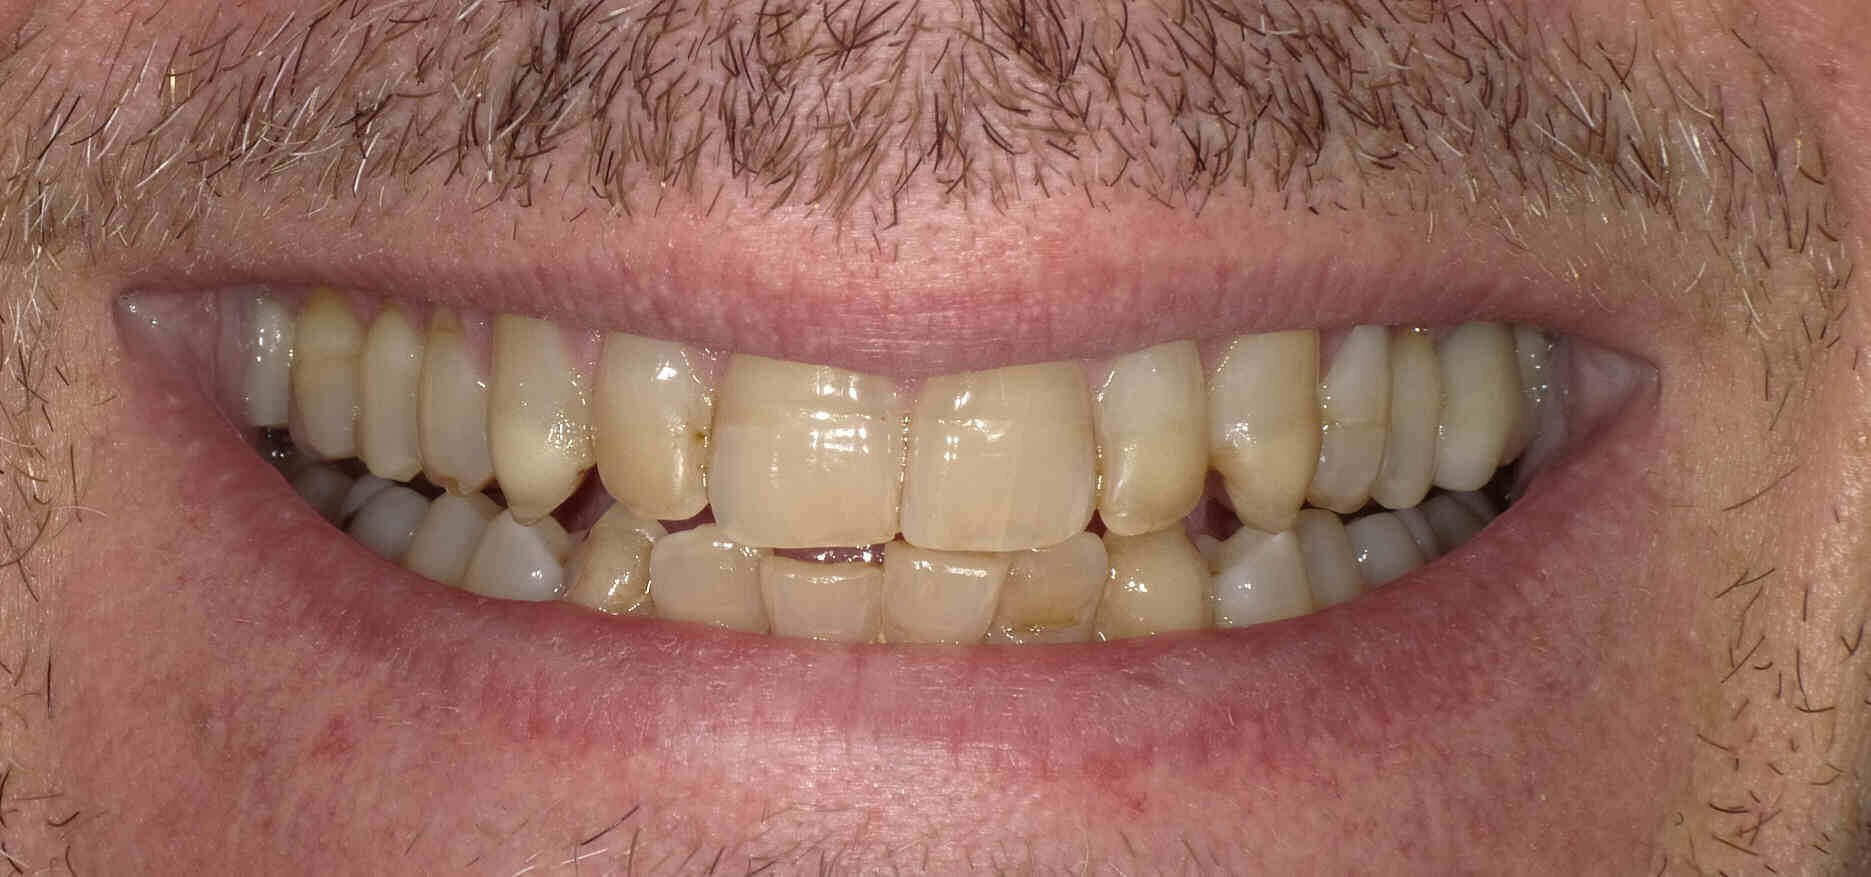 Tooth Whitening in Atlanta, Ga Before